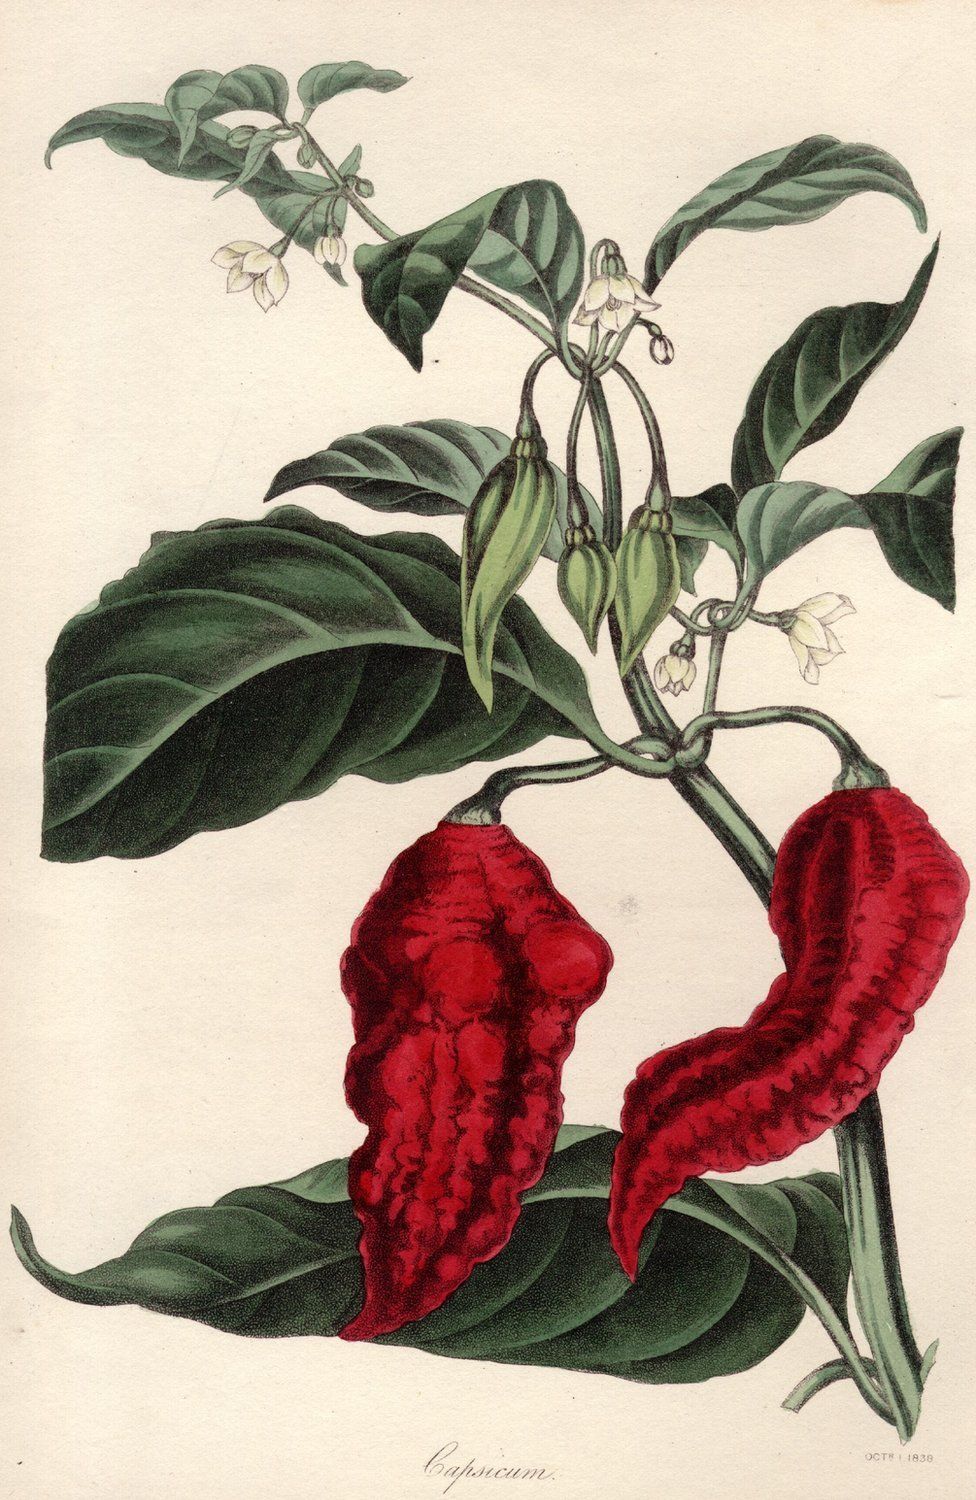 A picture from the 1830s of capsicum ustulatum, a kind of chilli